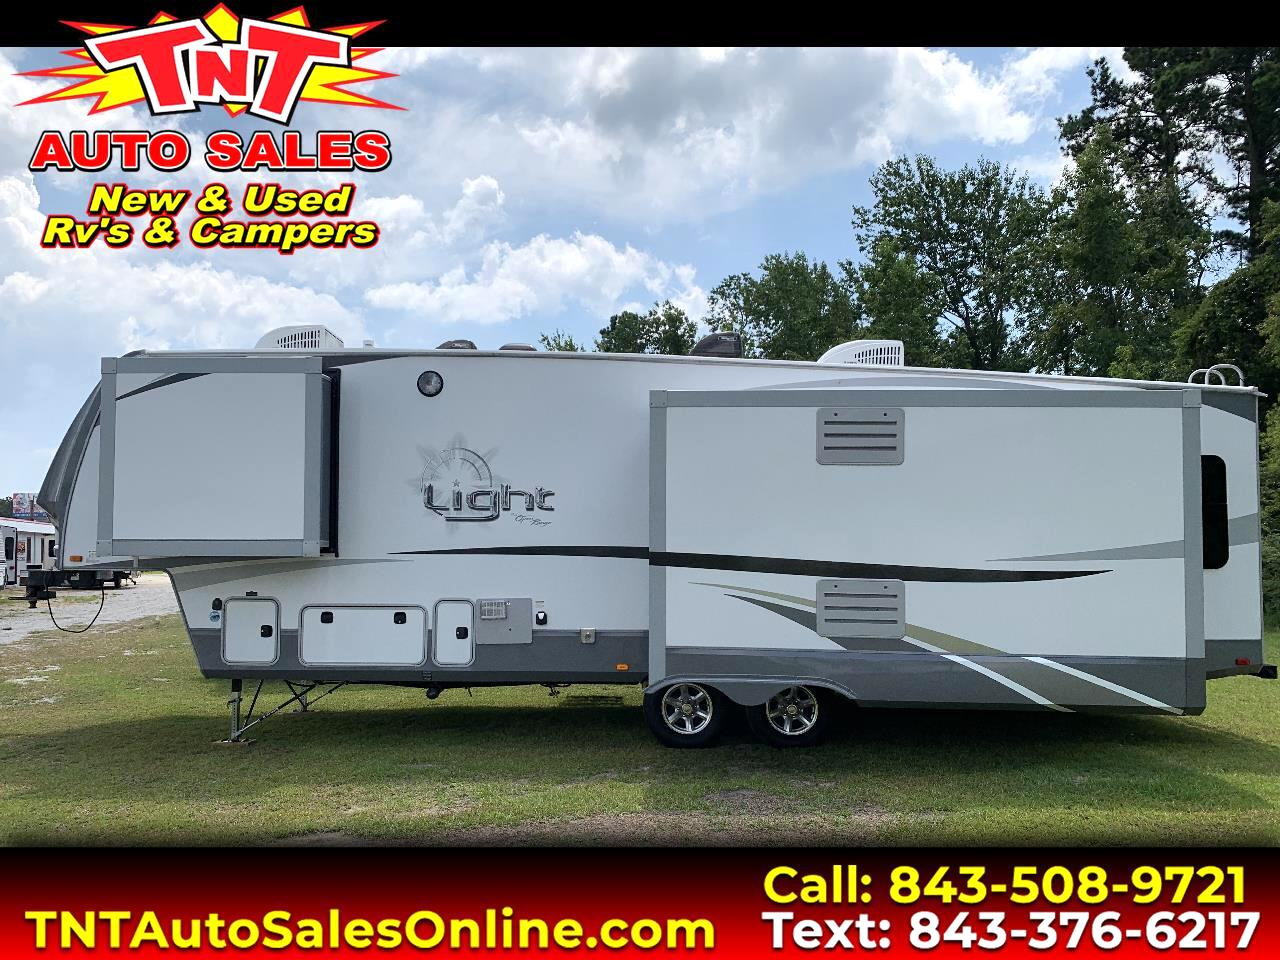 2018 Highland Ridge The Light 319RLS